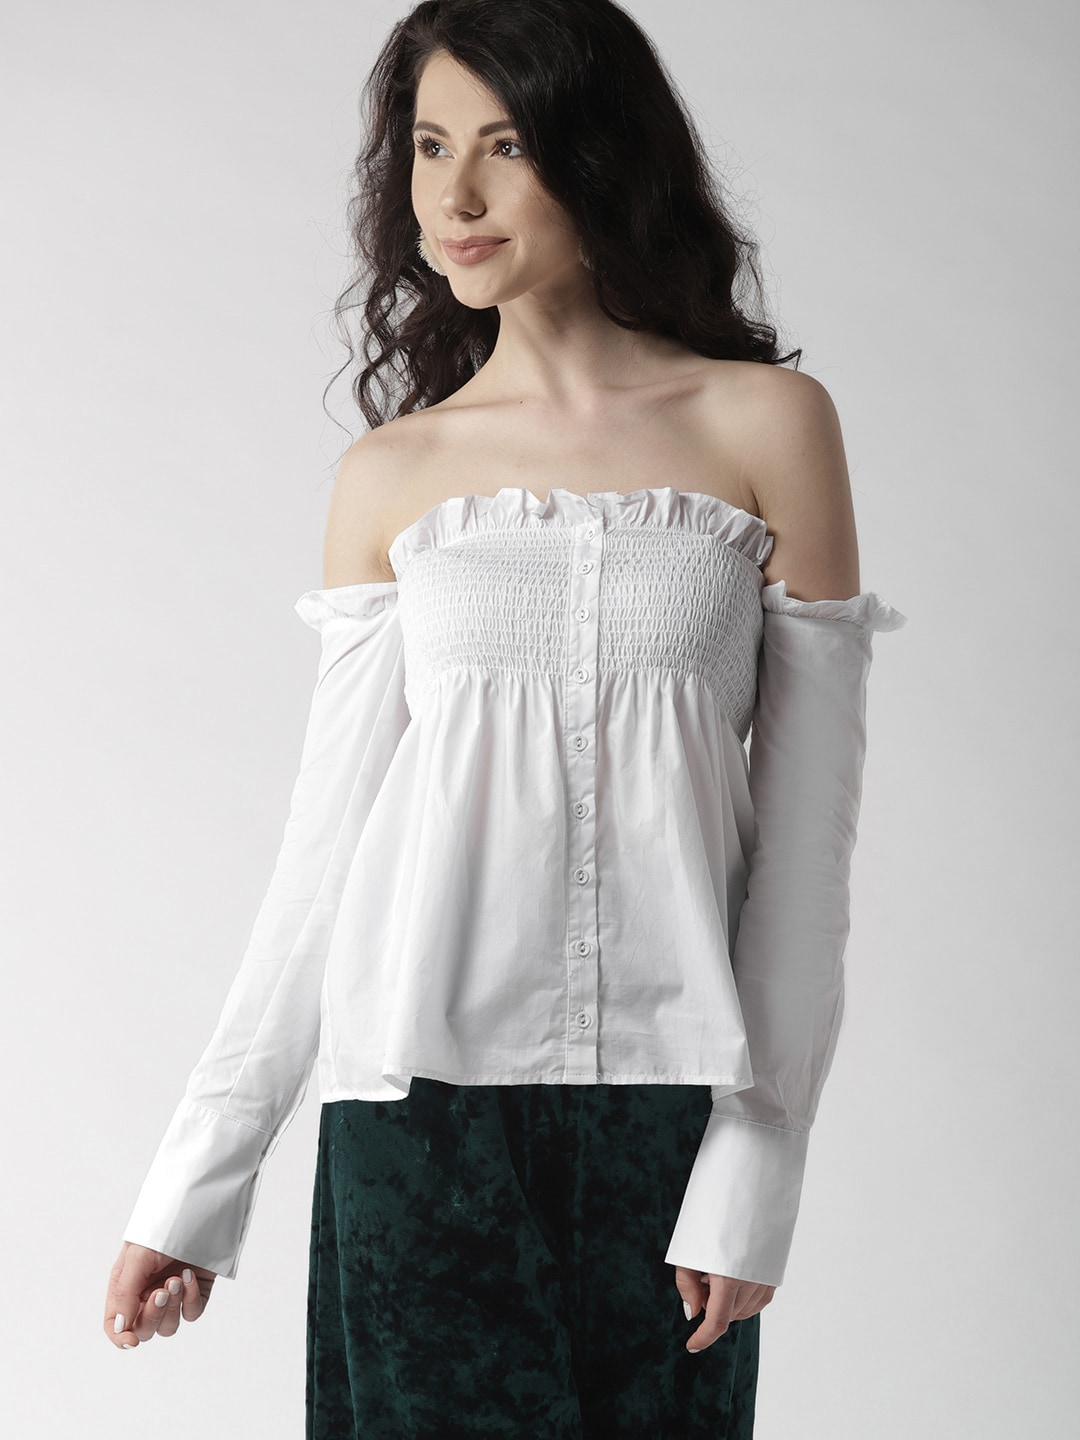 c8f06571ef502e Forever 21 Woven Tops - Buy Forever 21 Woven Tops online in India